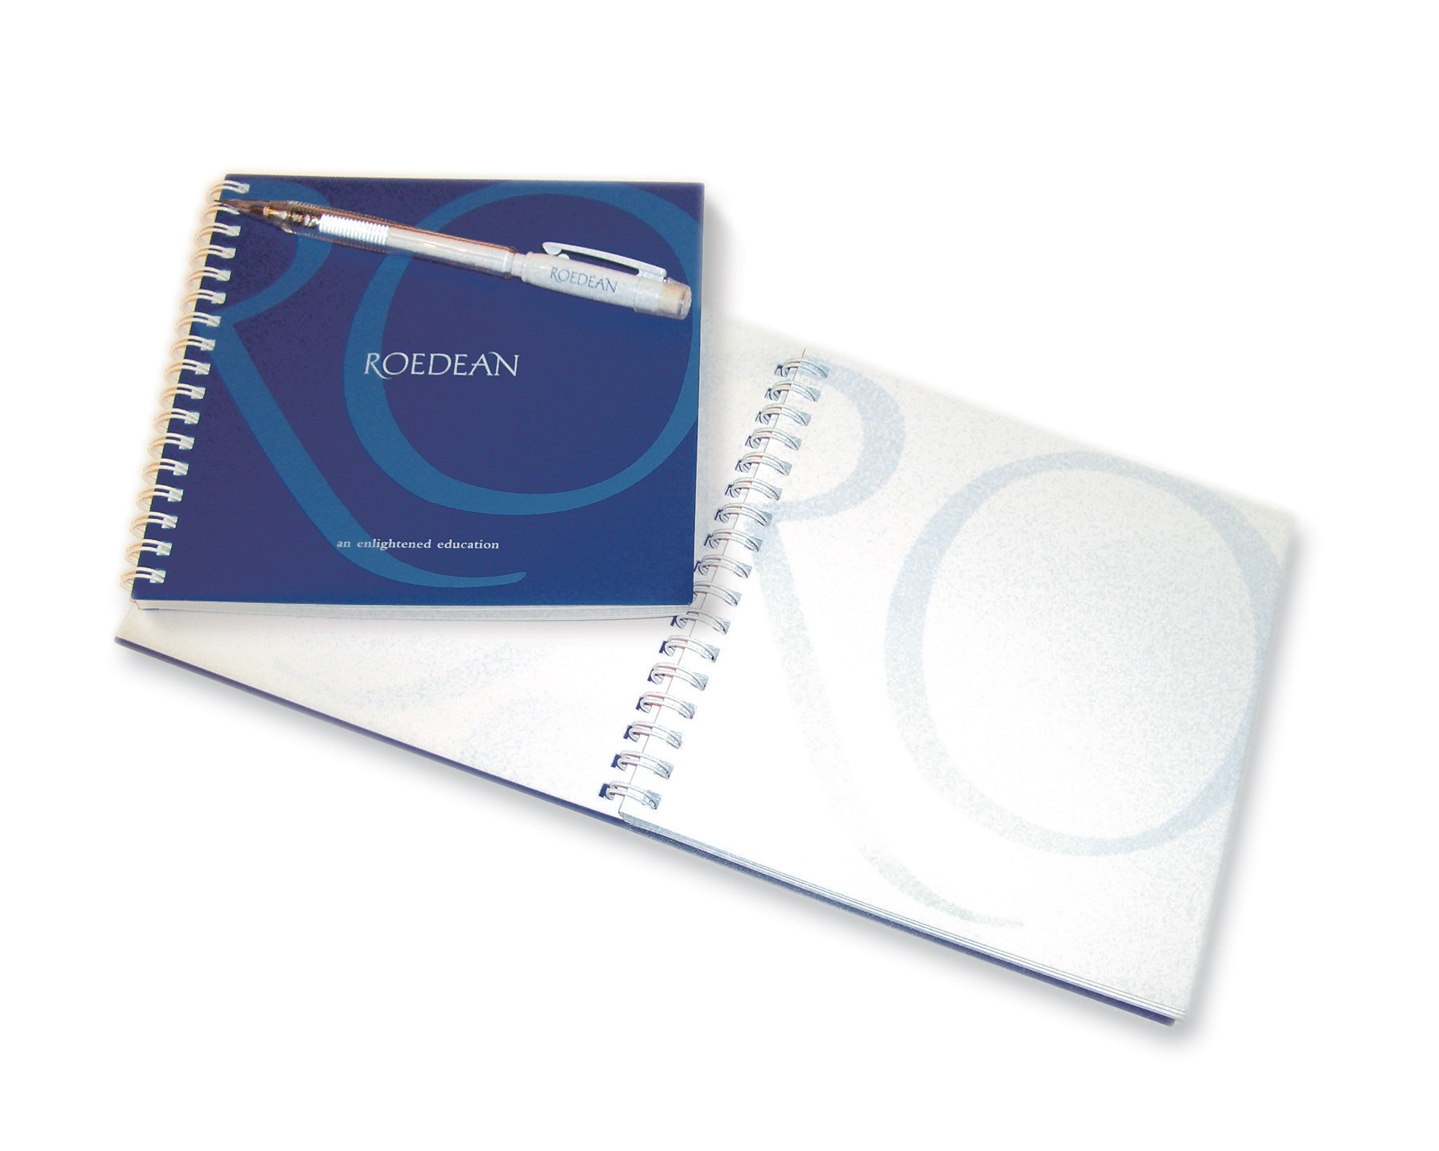 ROEDEAN Notepad